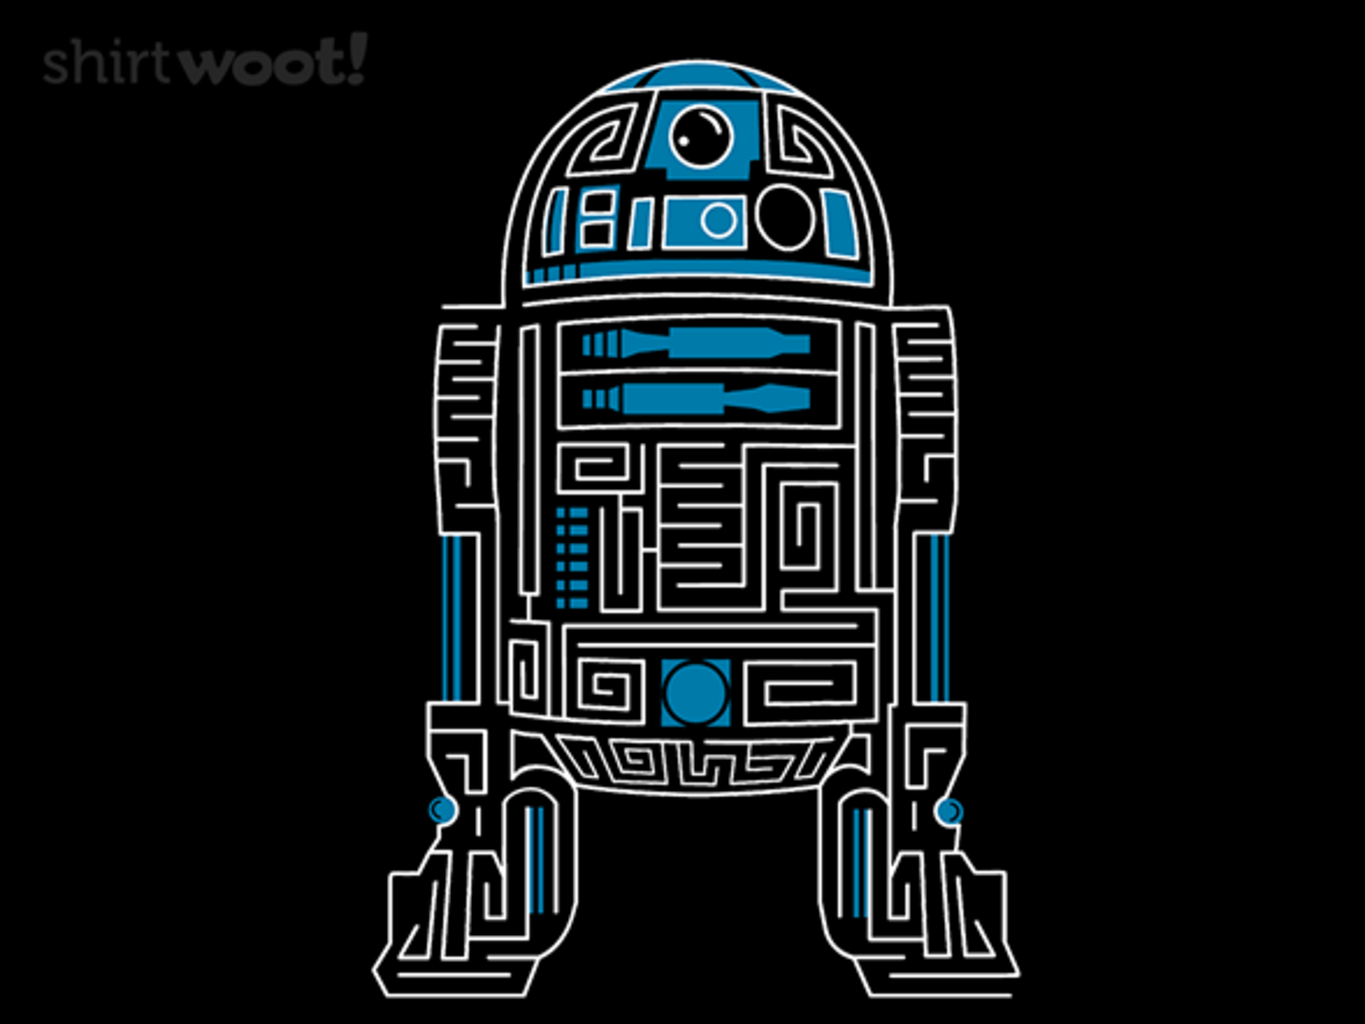 Woot!: R2D2 is Amazing